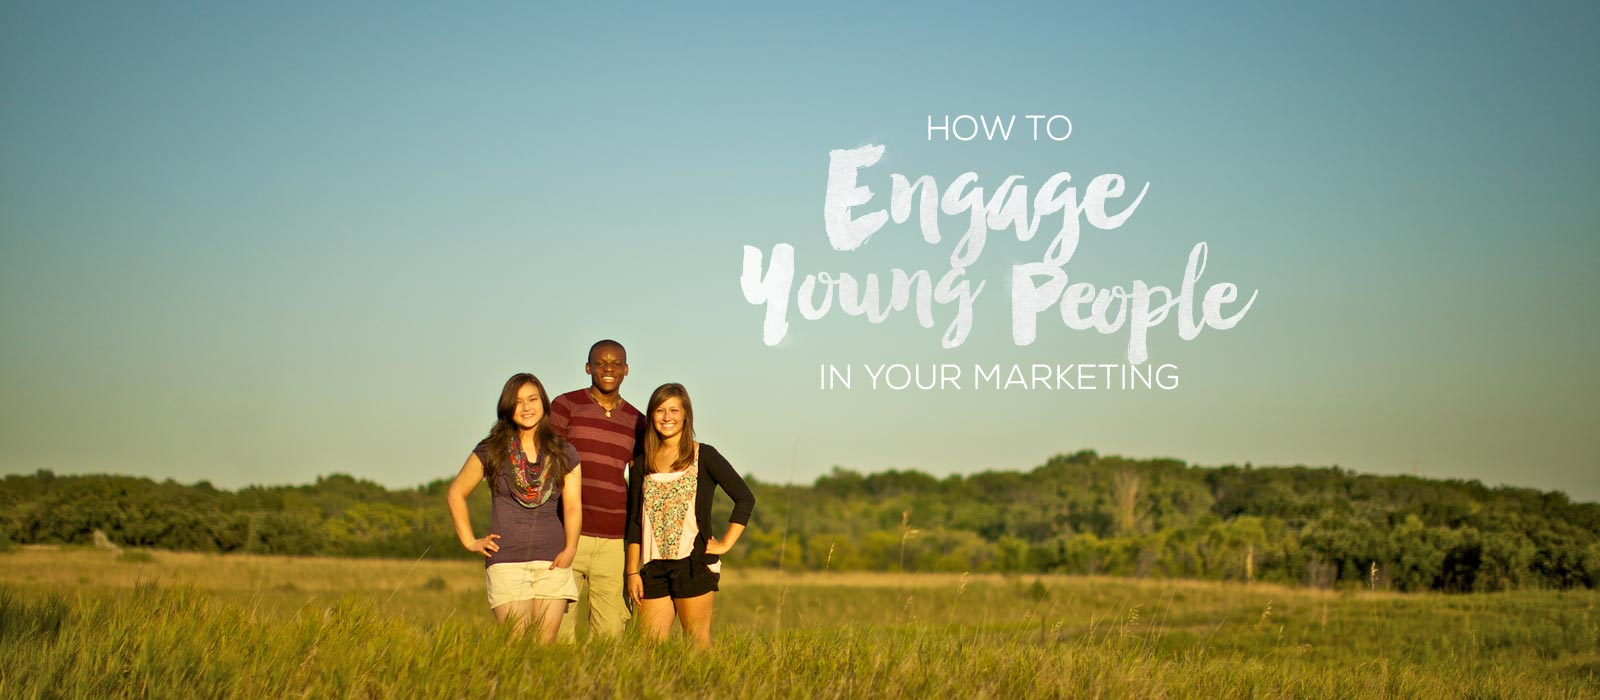 How to Engage Young People in Your Marketing